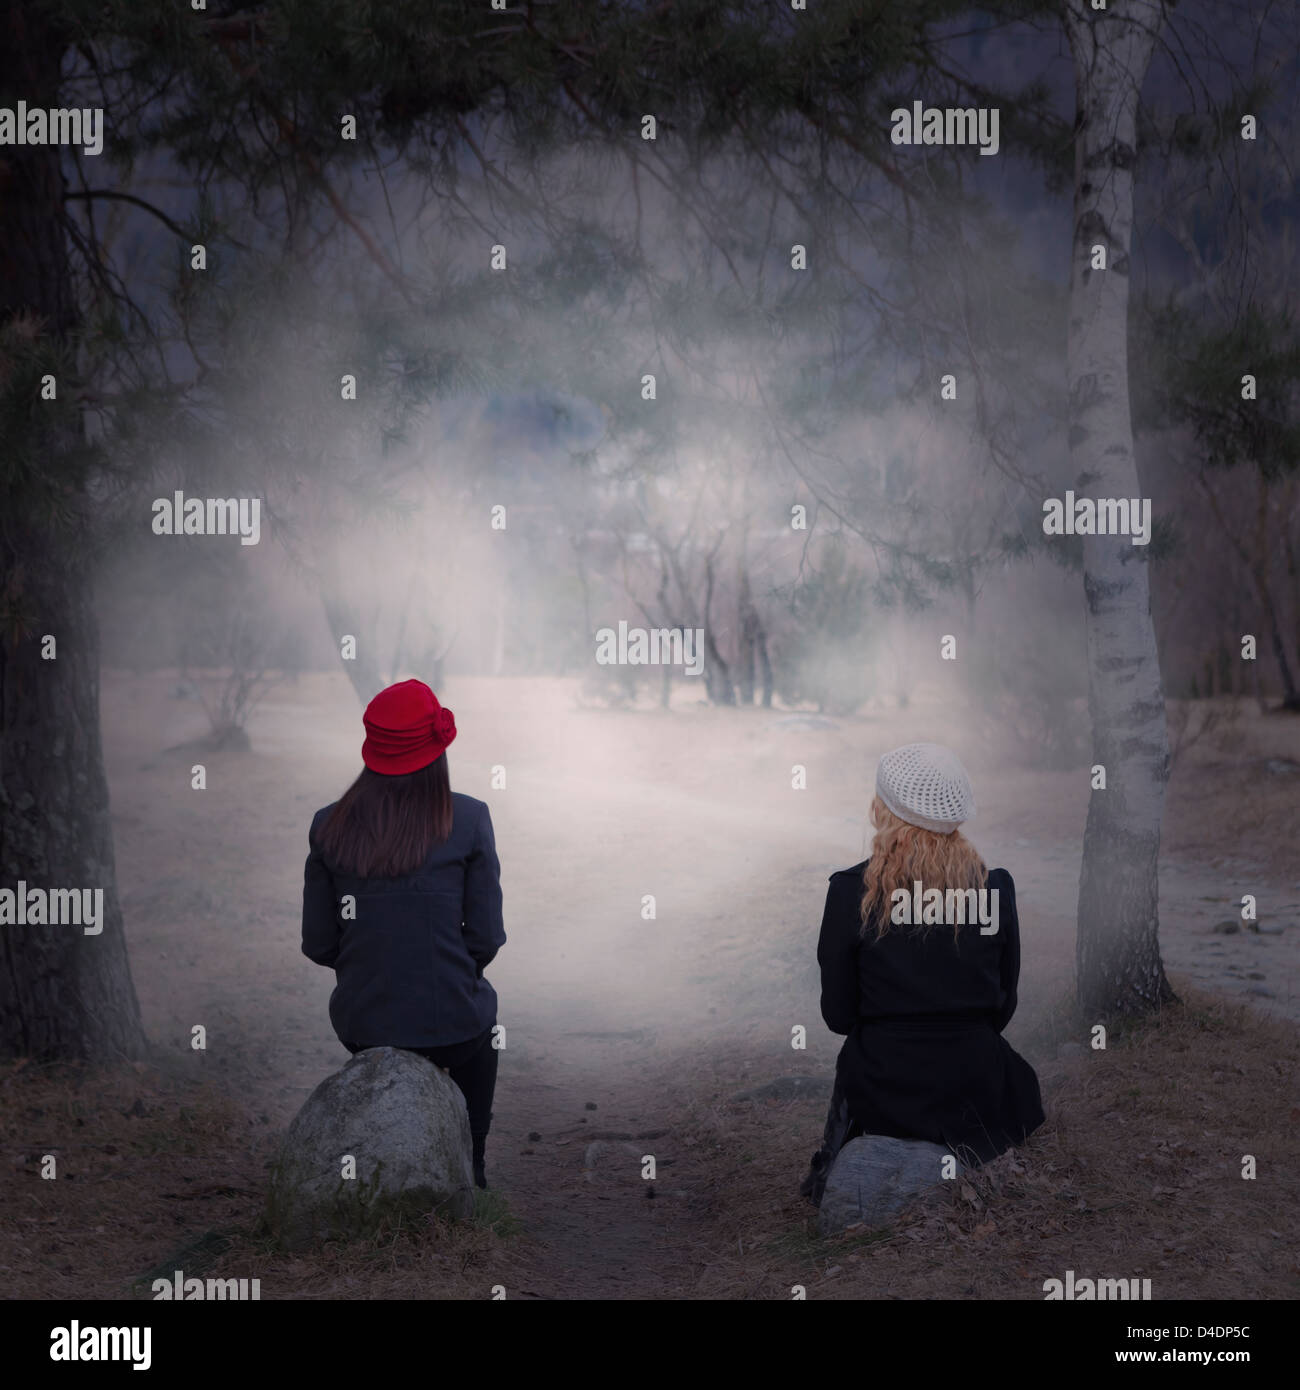 two girls sitting on stones in a forest - Stock Image